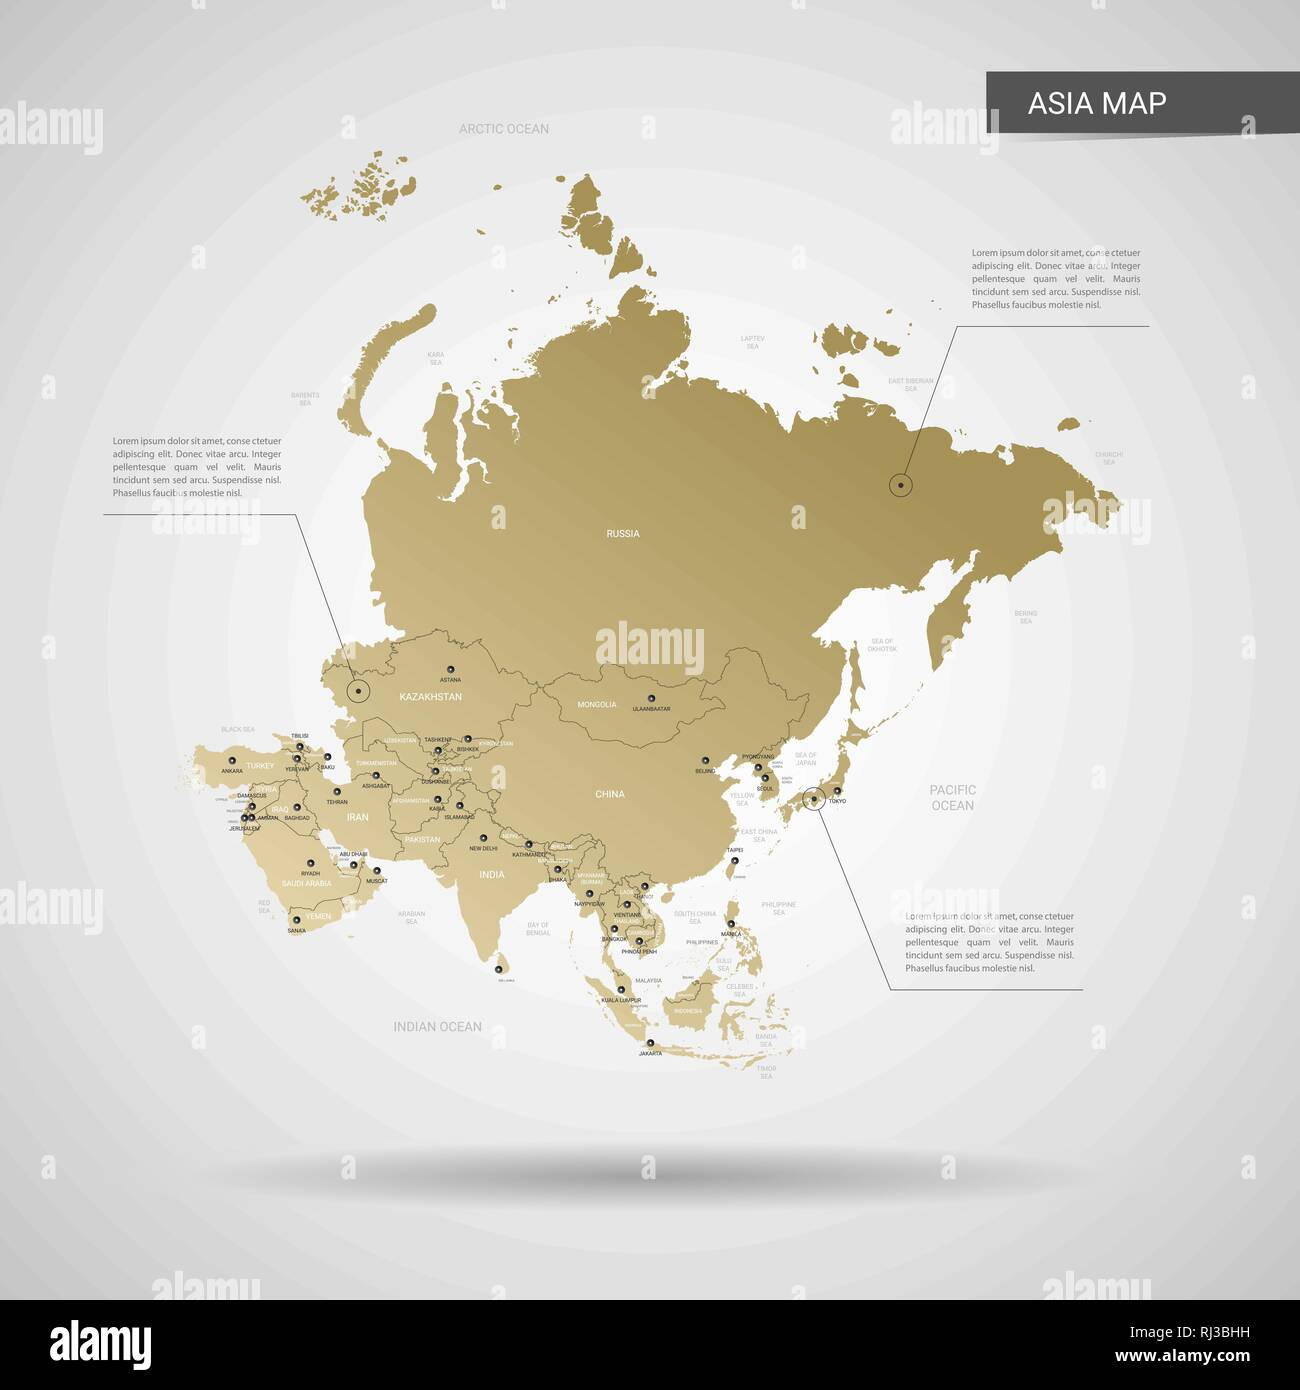 Map Of Asia With Capital Cities.Stylized Vector Asia Map Infographic 3d Gold Map Illustration With